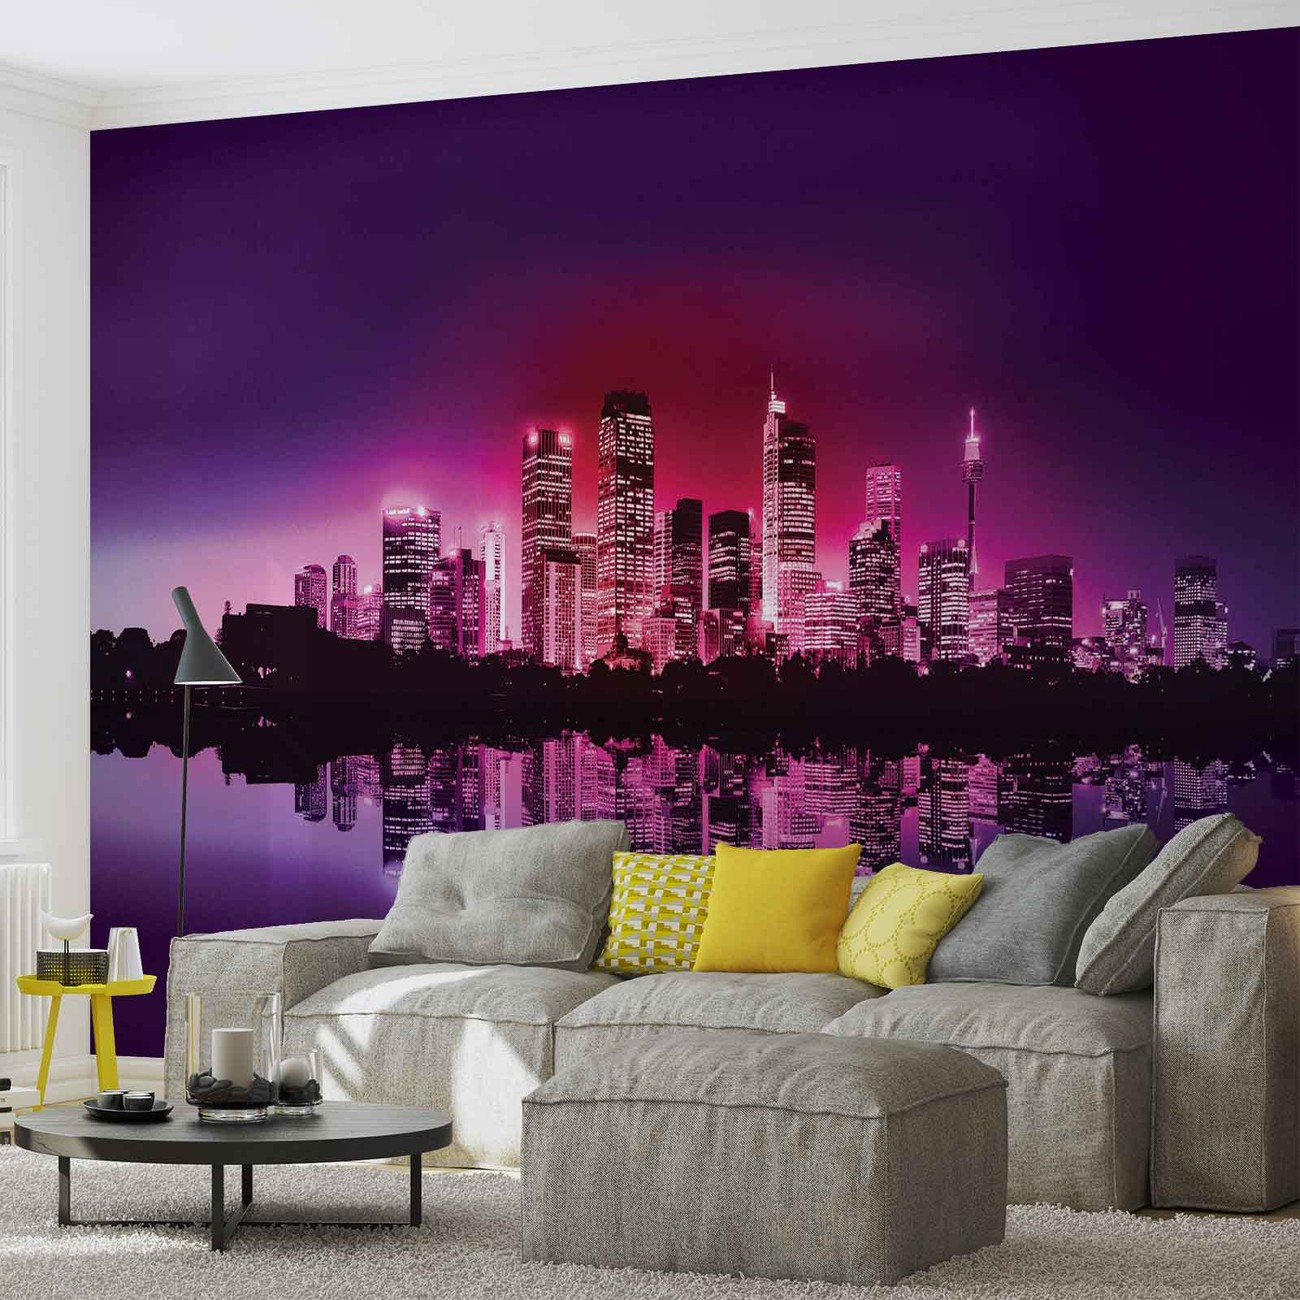 City new york skyline wall paper mural buy at for Cityscape wall mural